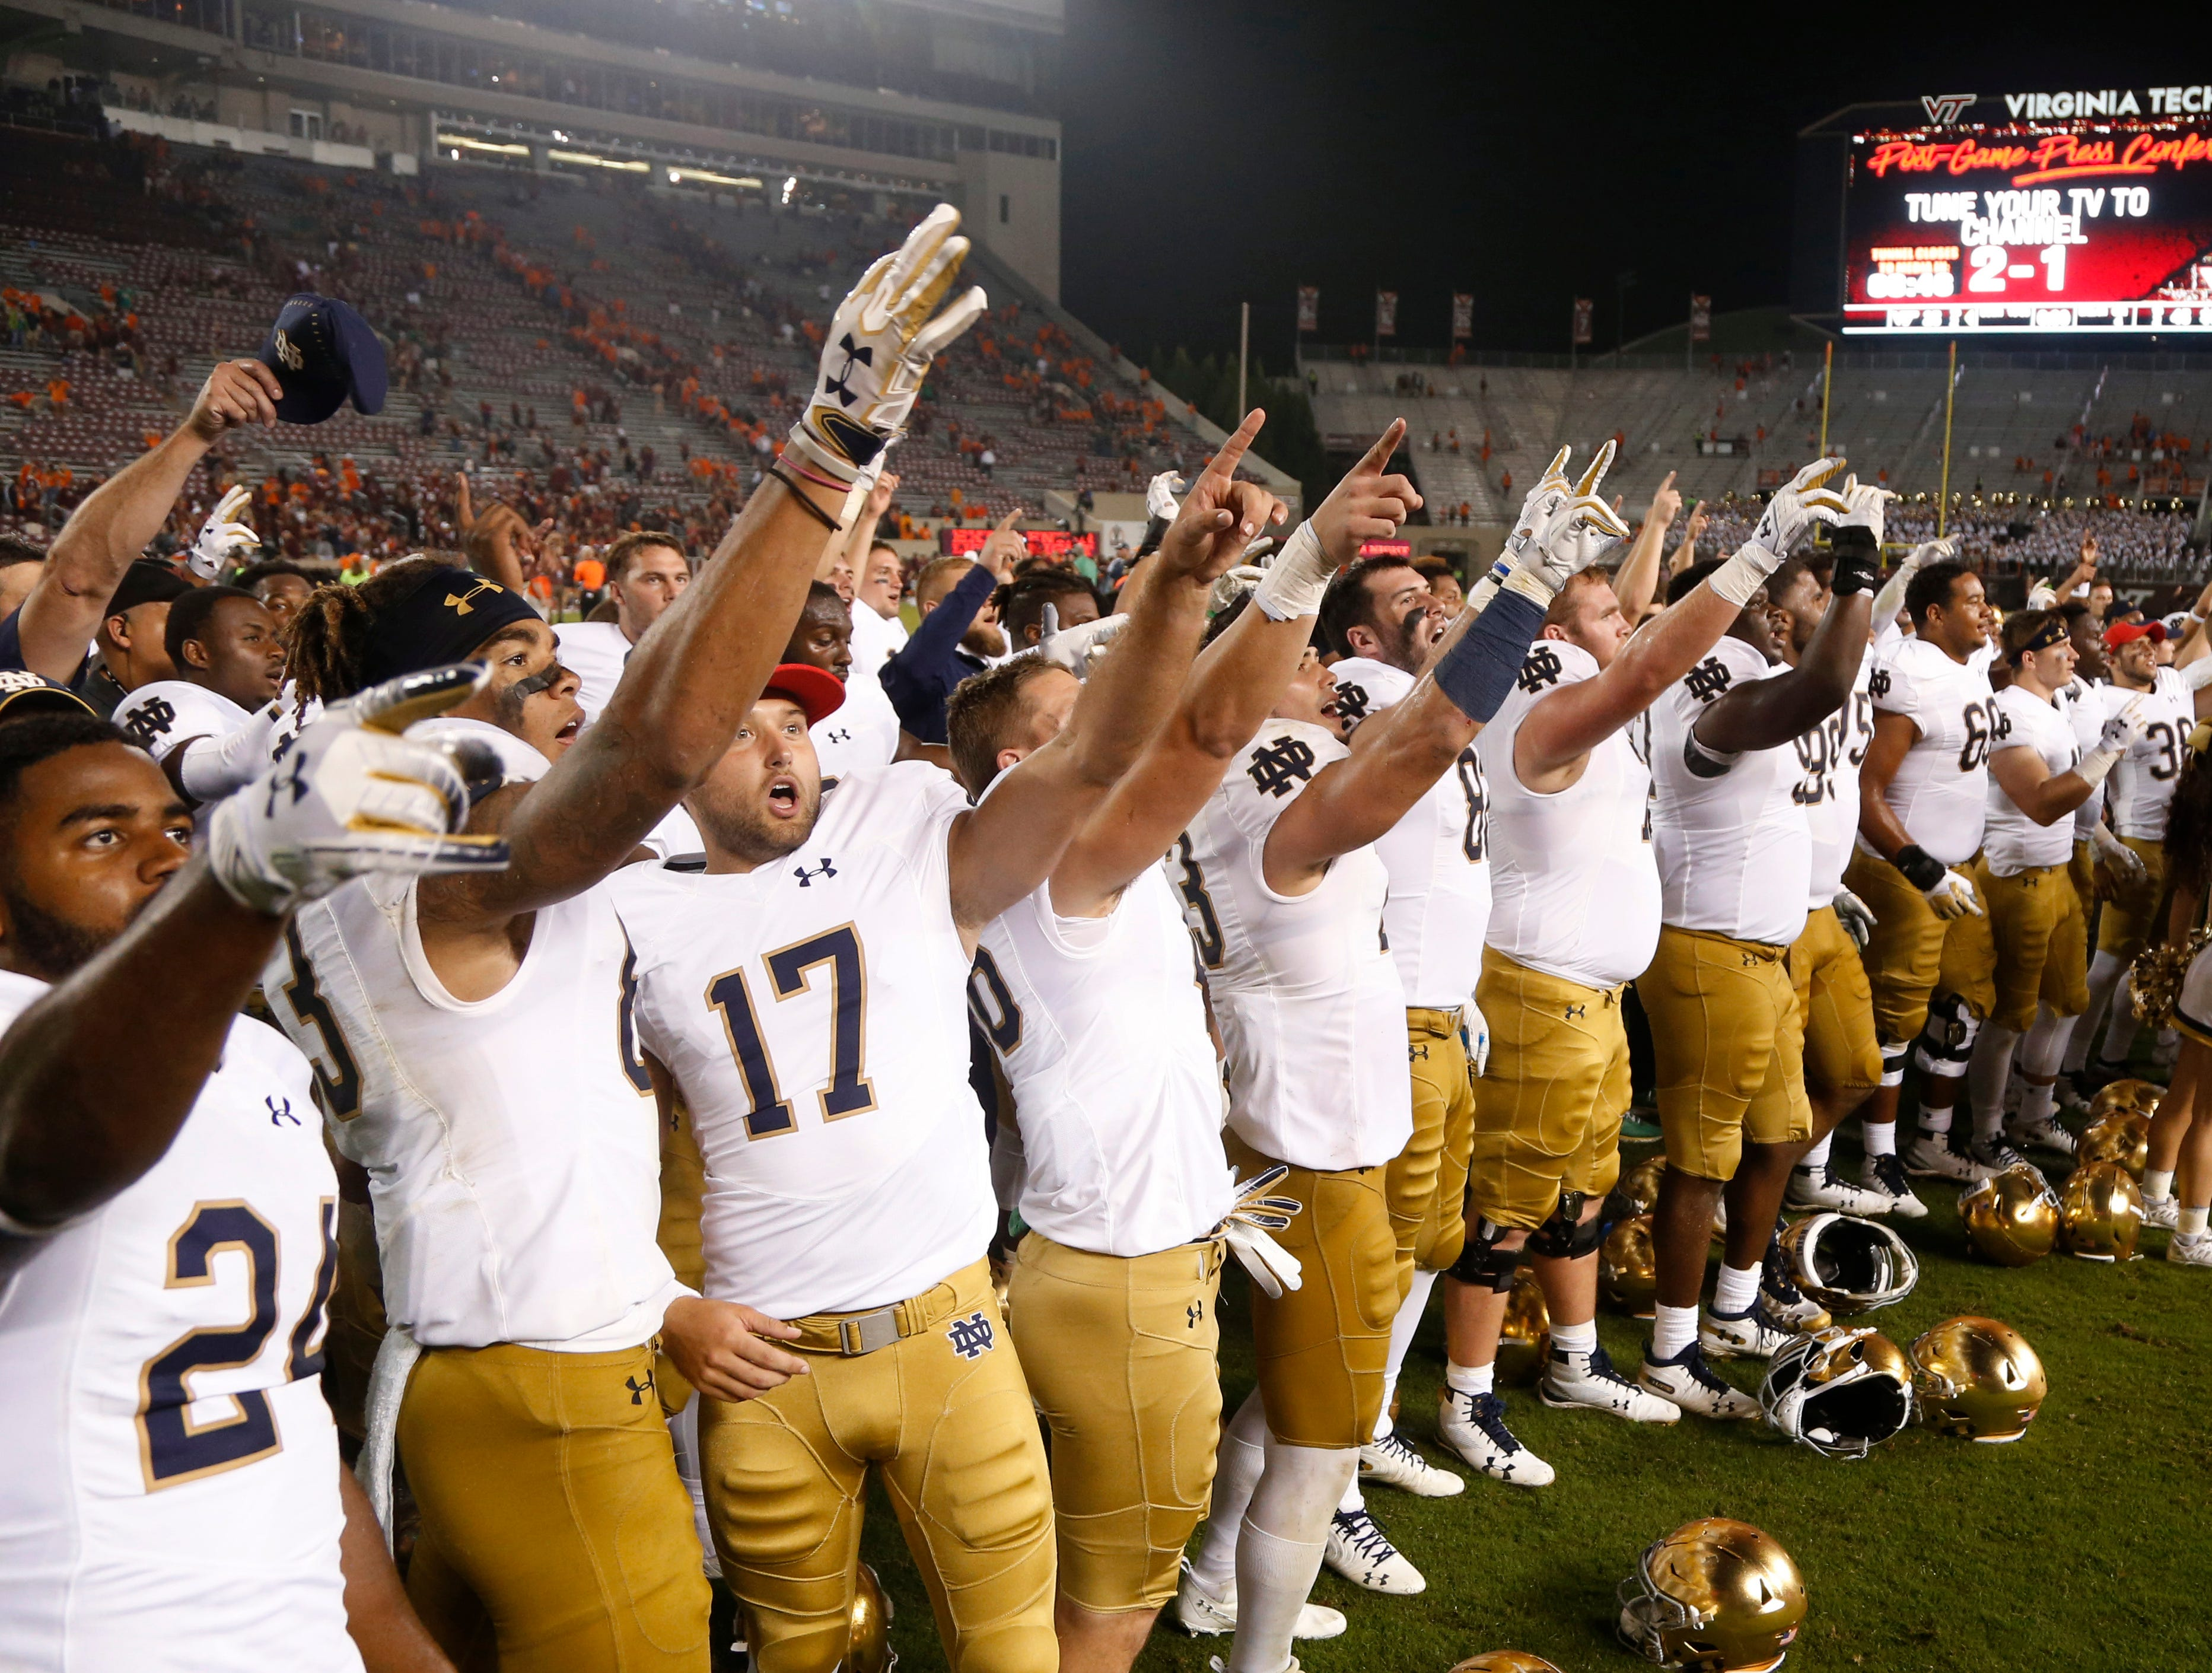 Notre Dame players celebrate a 45-23 win against Virginia Tech that improved their record to 6-0.